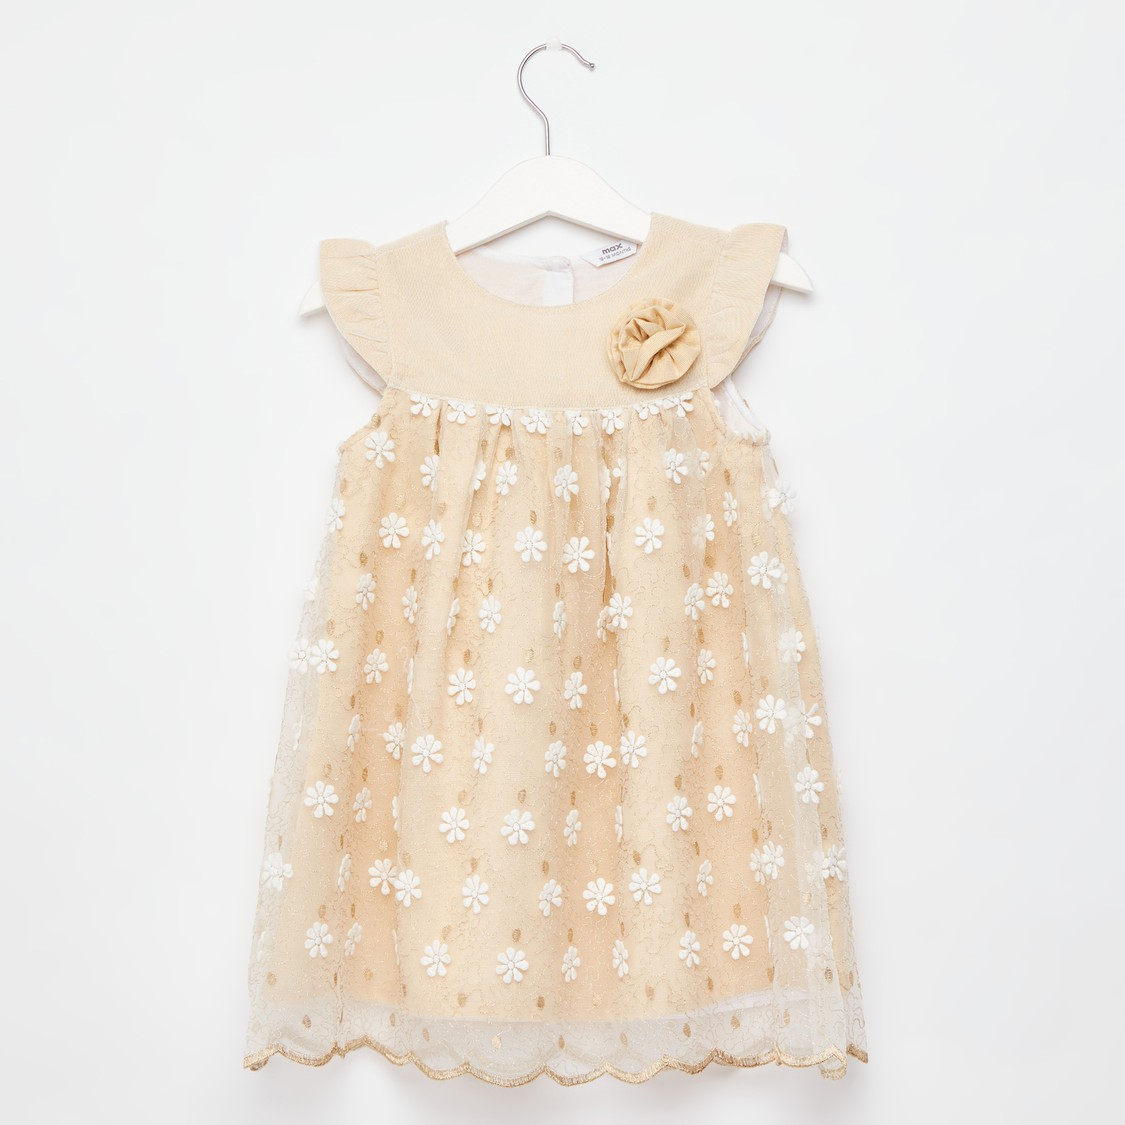 Floral Embroidered Dress with Floral Applique Detail